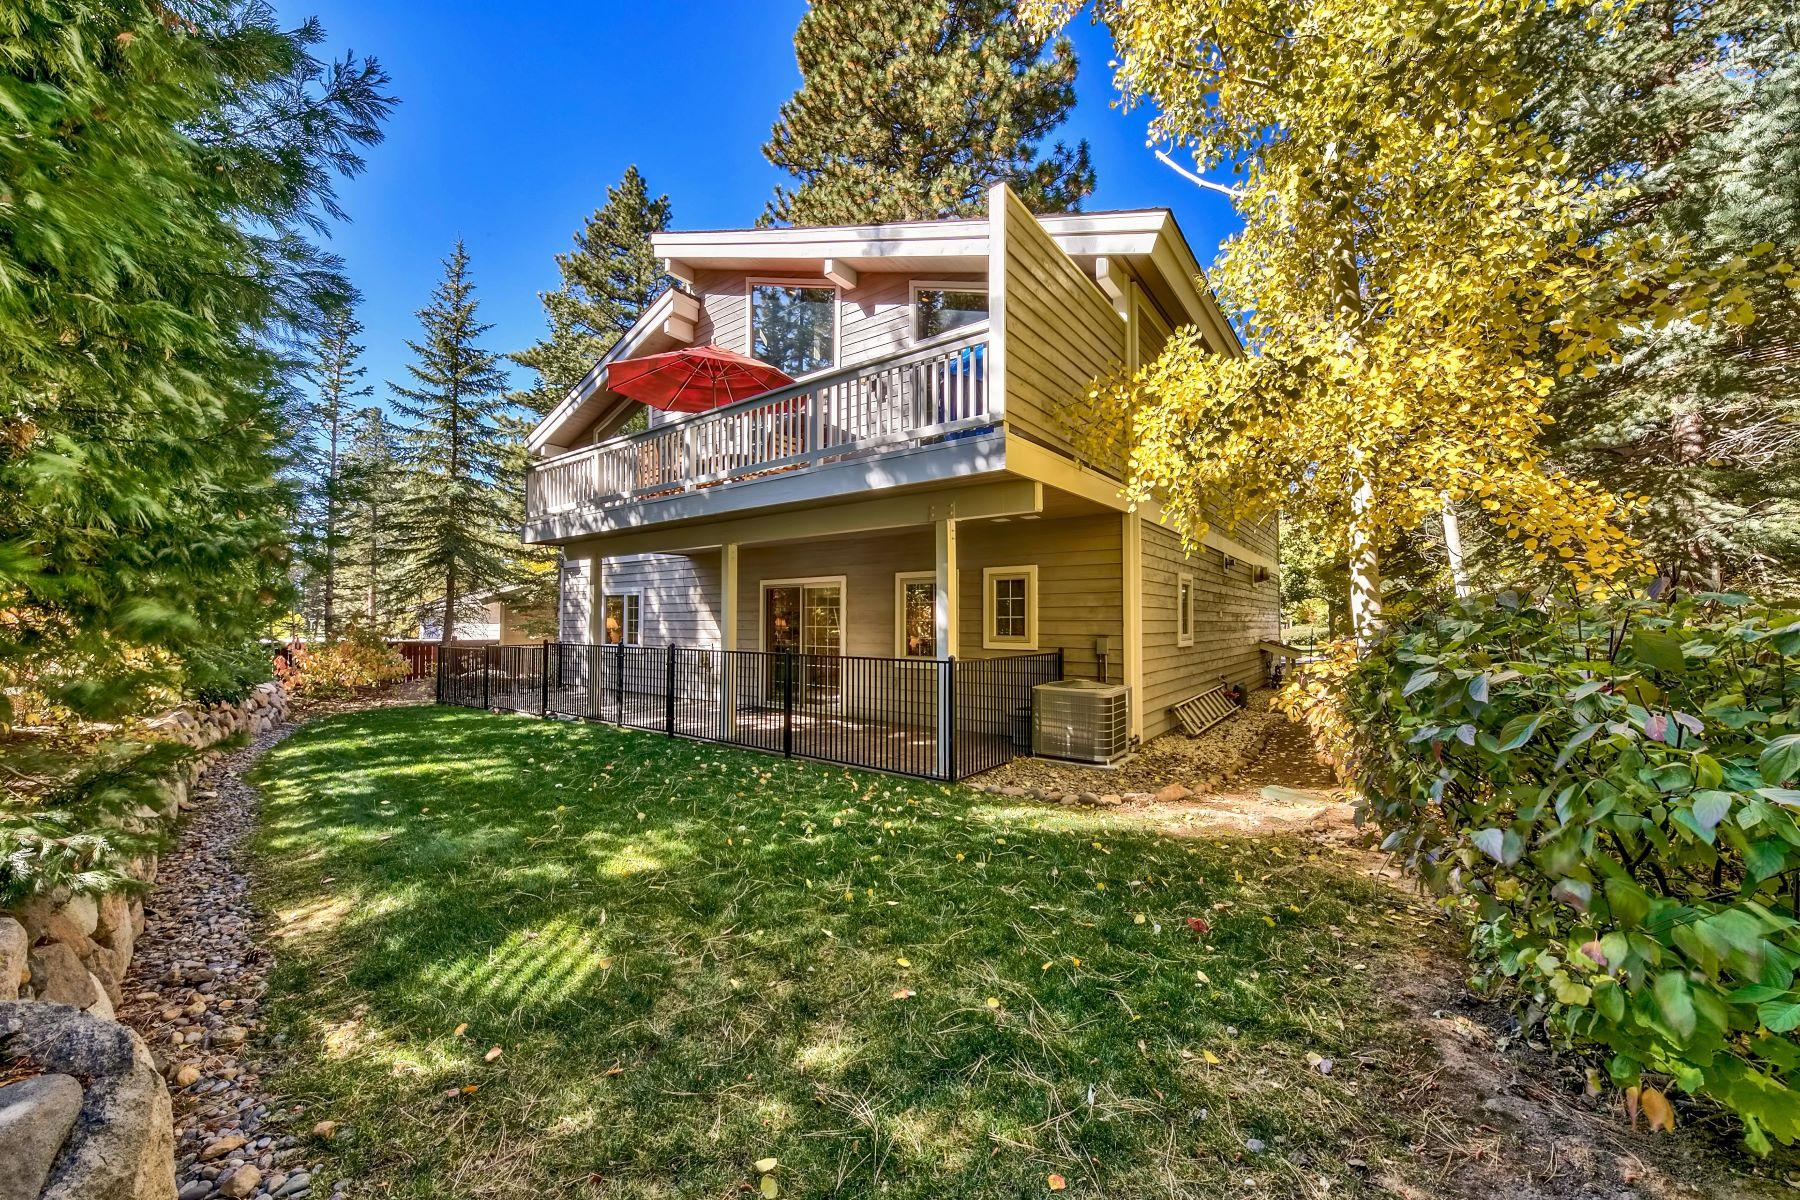 Additional photo for property listing at 258 Deer Ct , Incline Village, NV 89451 258 Deer Court Incline Village, Nevada 89451 Estados Unidos